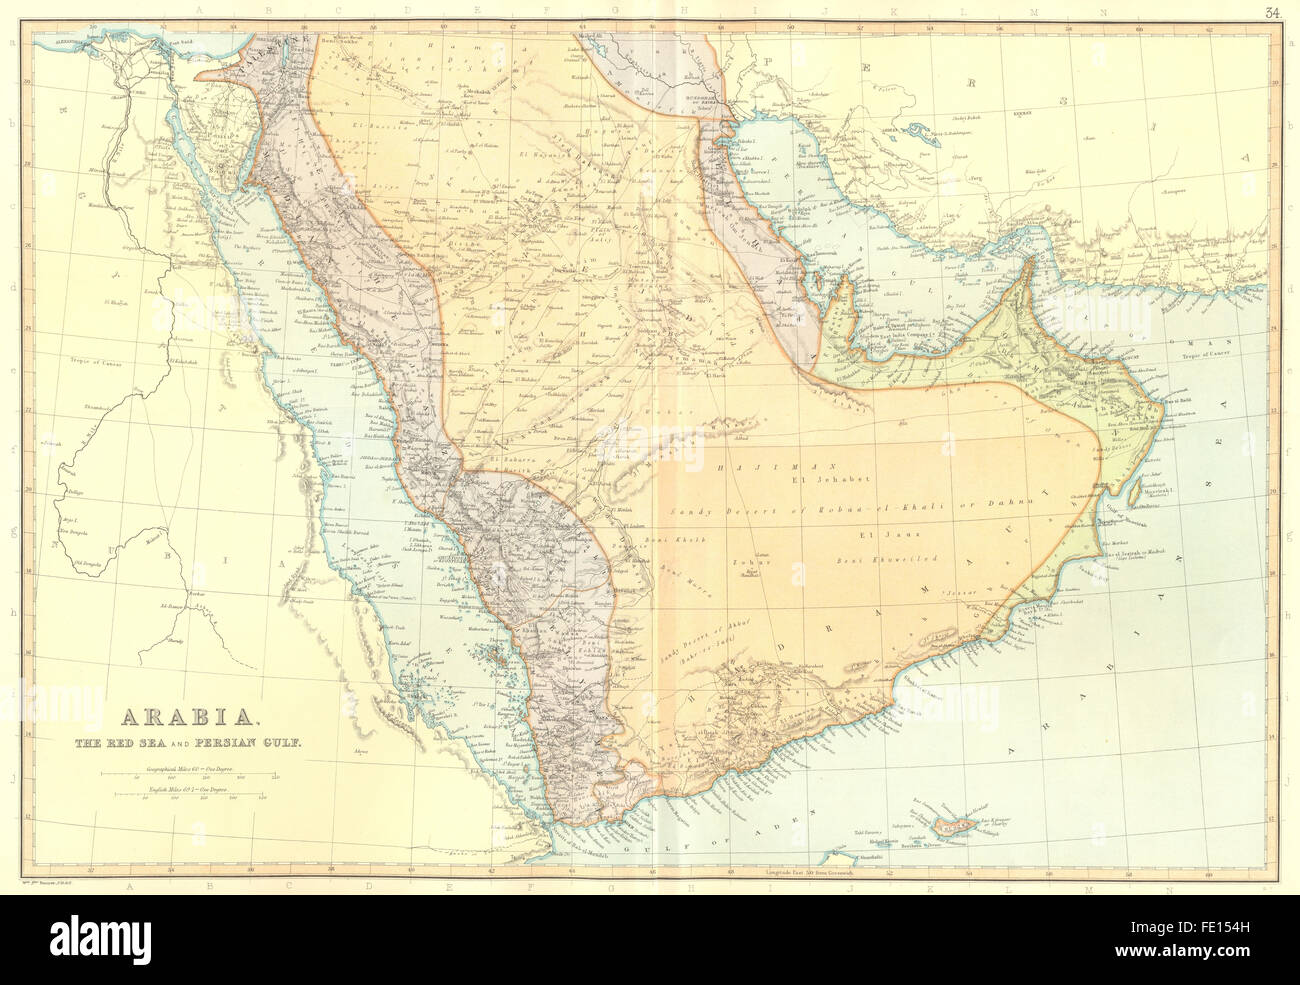 Gulf Of Aden Map Stock Photos & Gulf Of Aden Map Stock ...